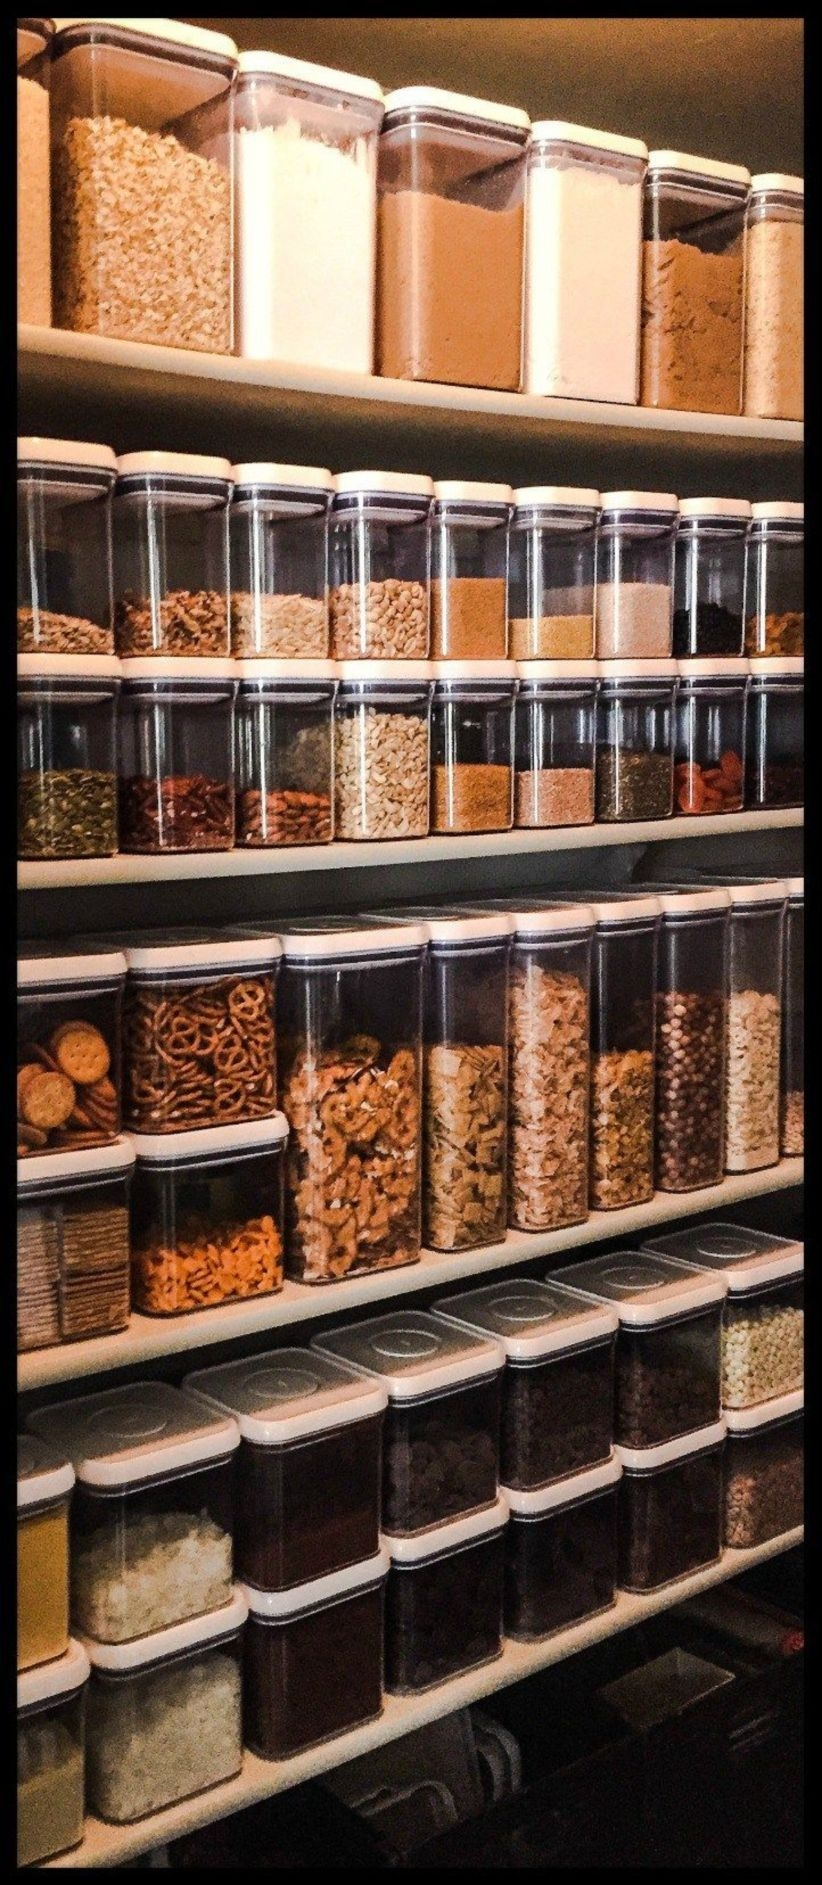 44 Smart Kitchen Cabinet Organization Ideas - GODIYGO.COM